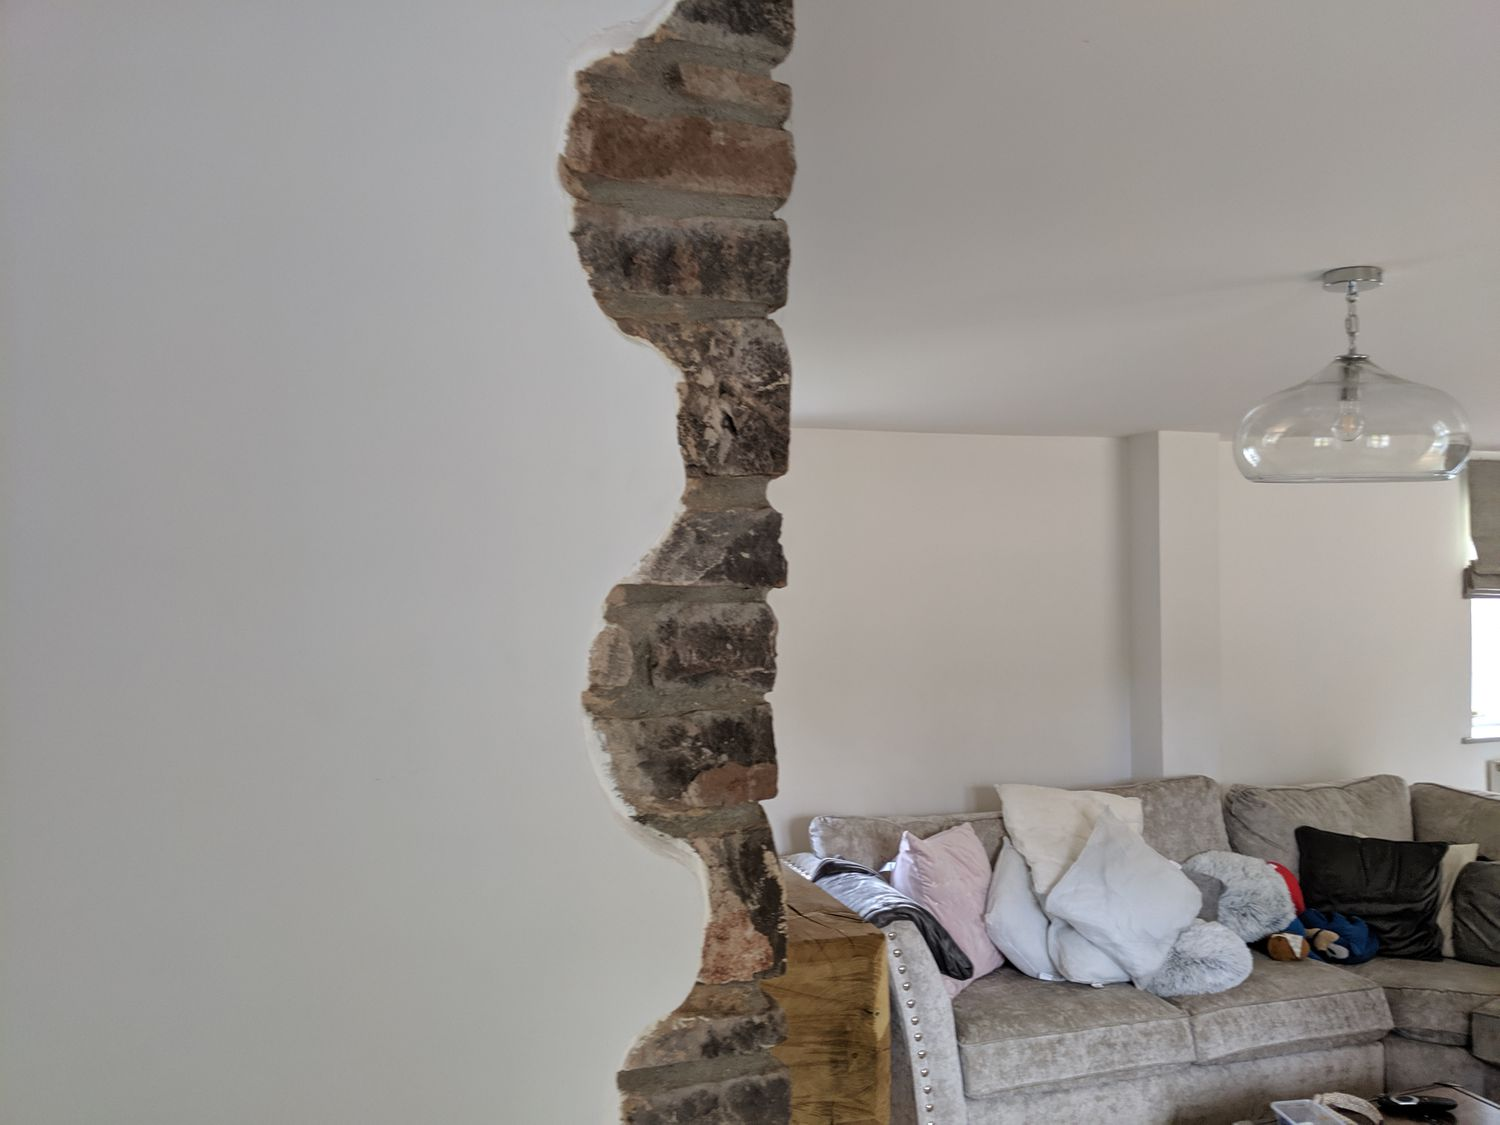 The same view of the chimney before it was taken out to make room for the seating.